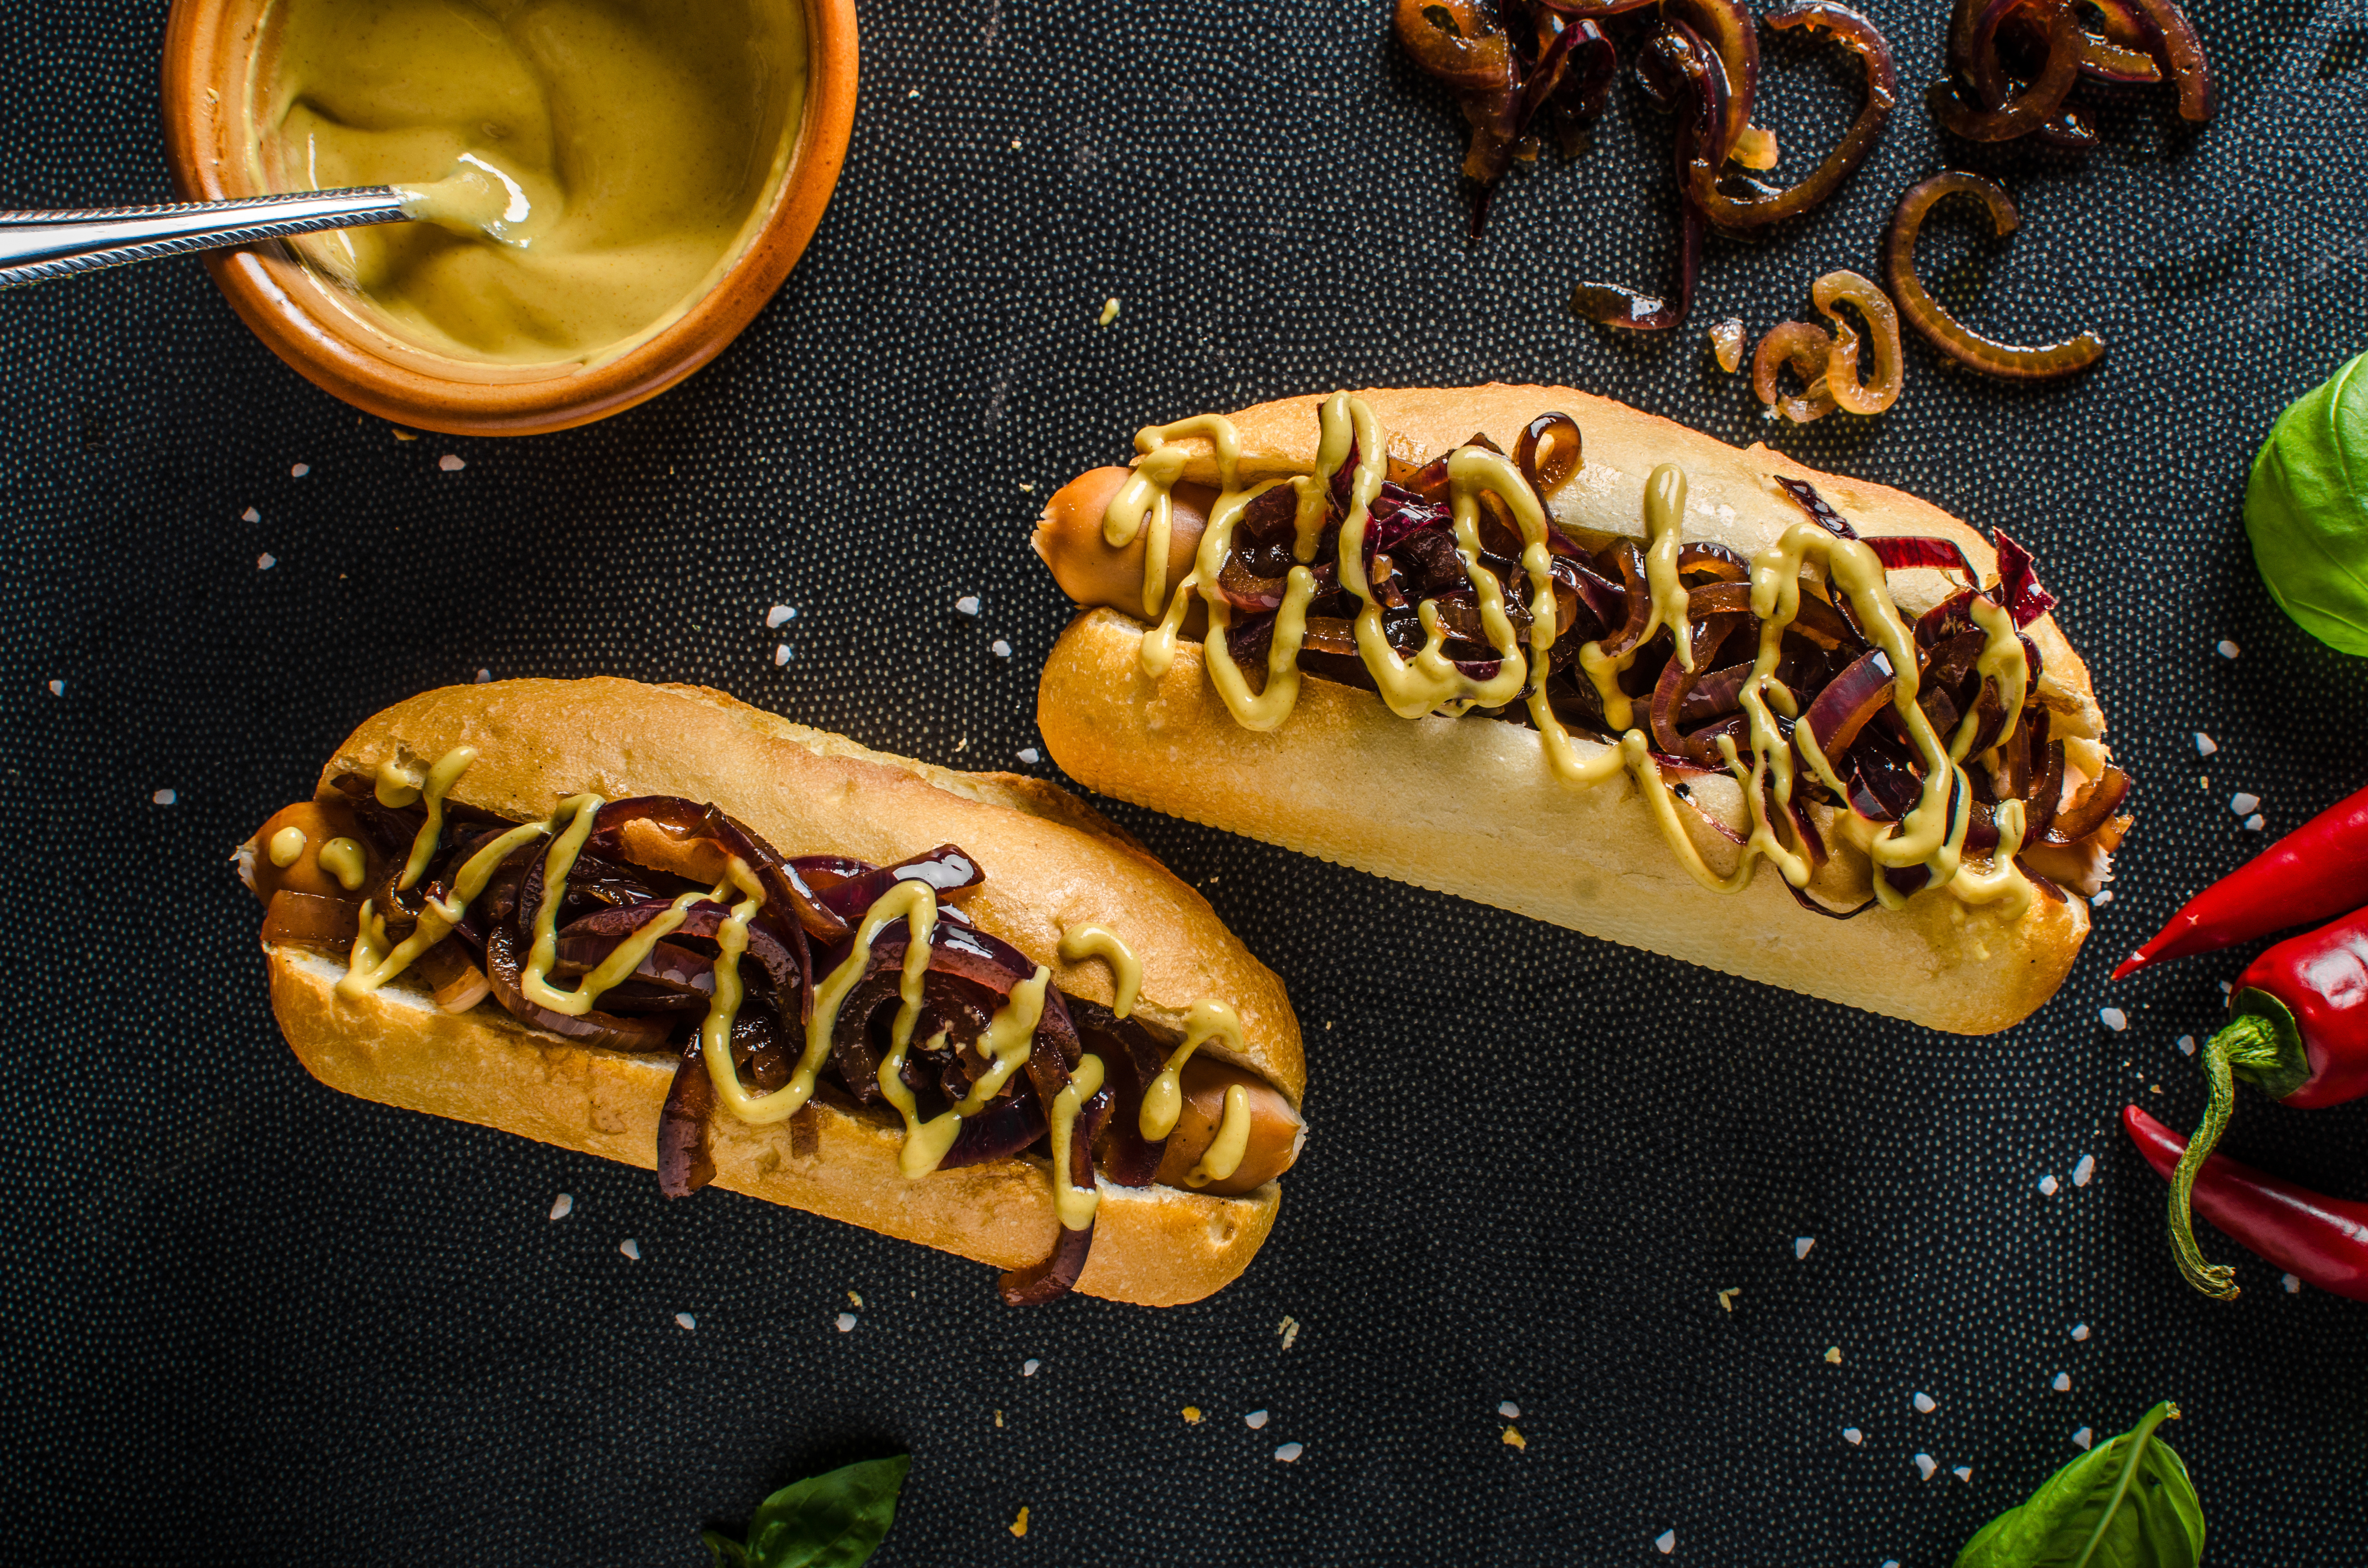 Hot Dog 4k Ultra Hd Wallpaper Background Image 4928x3264